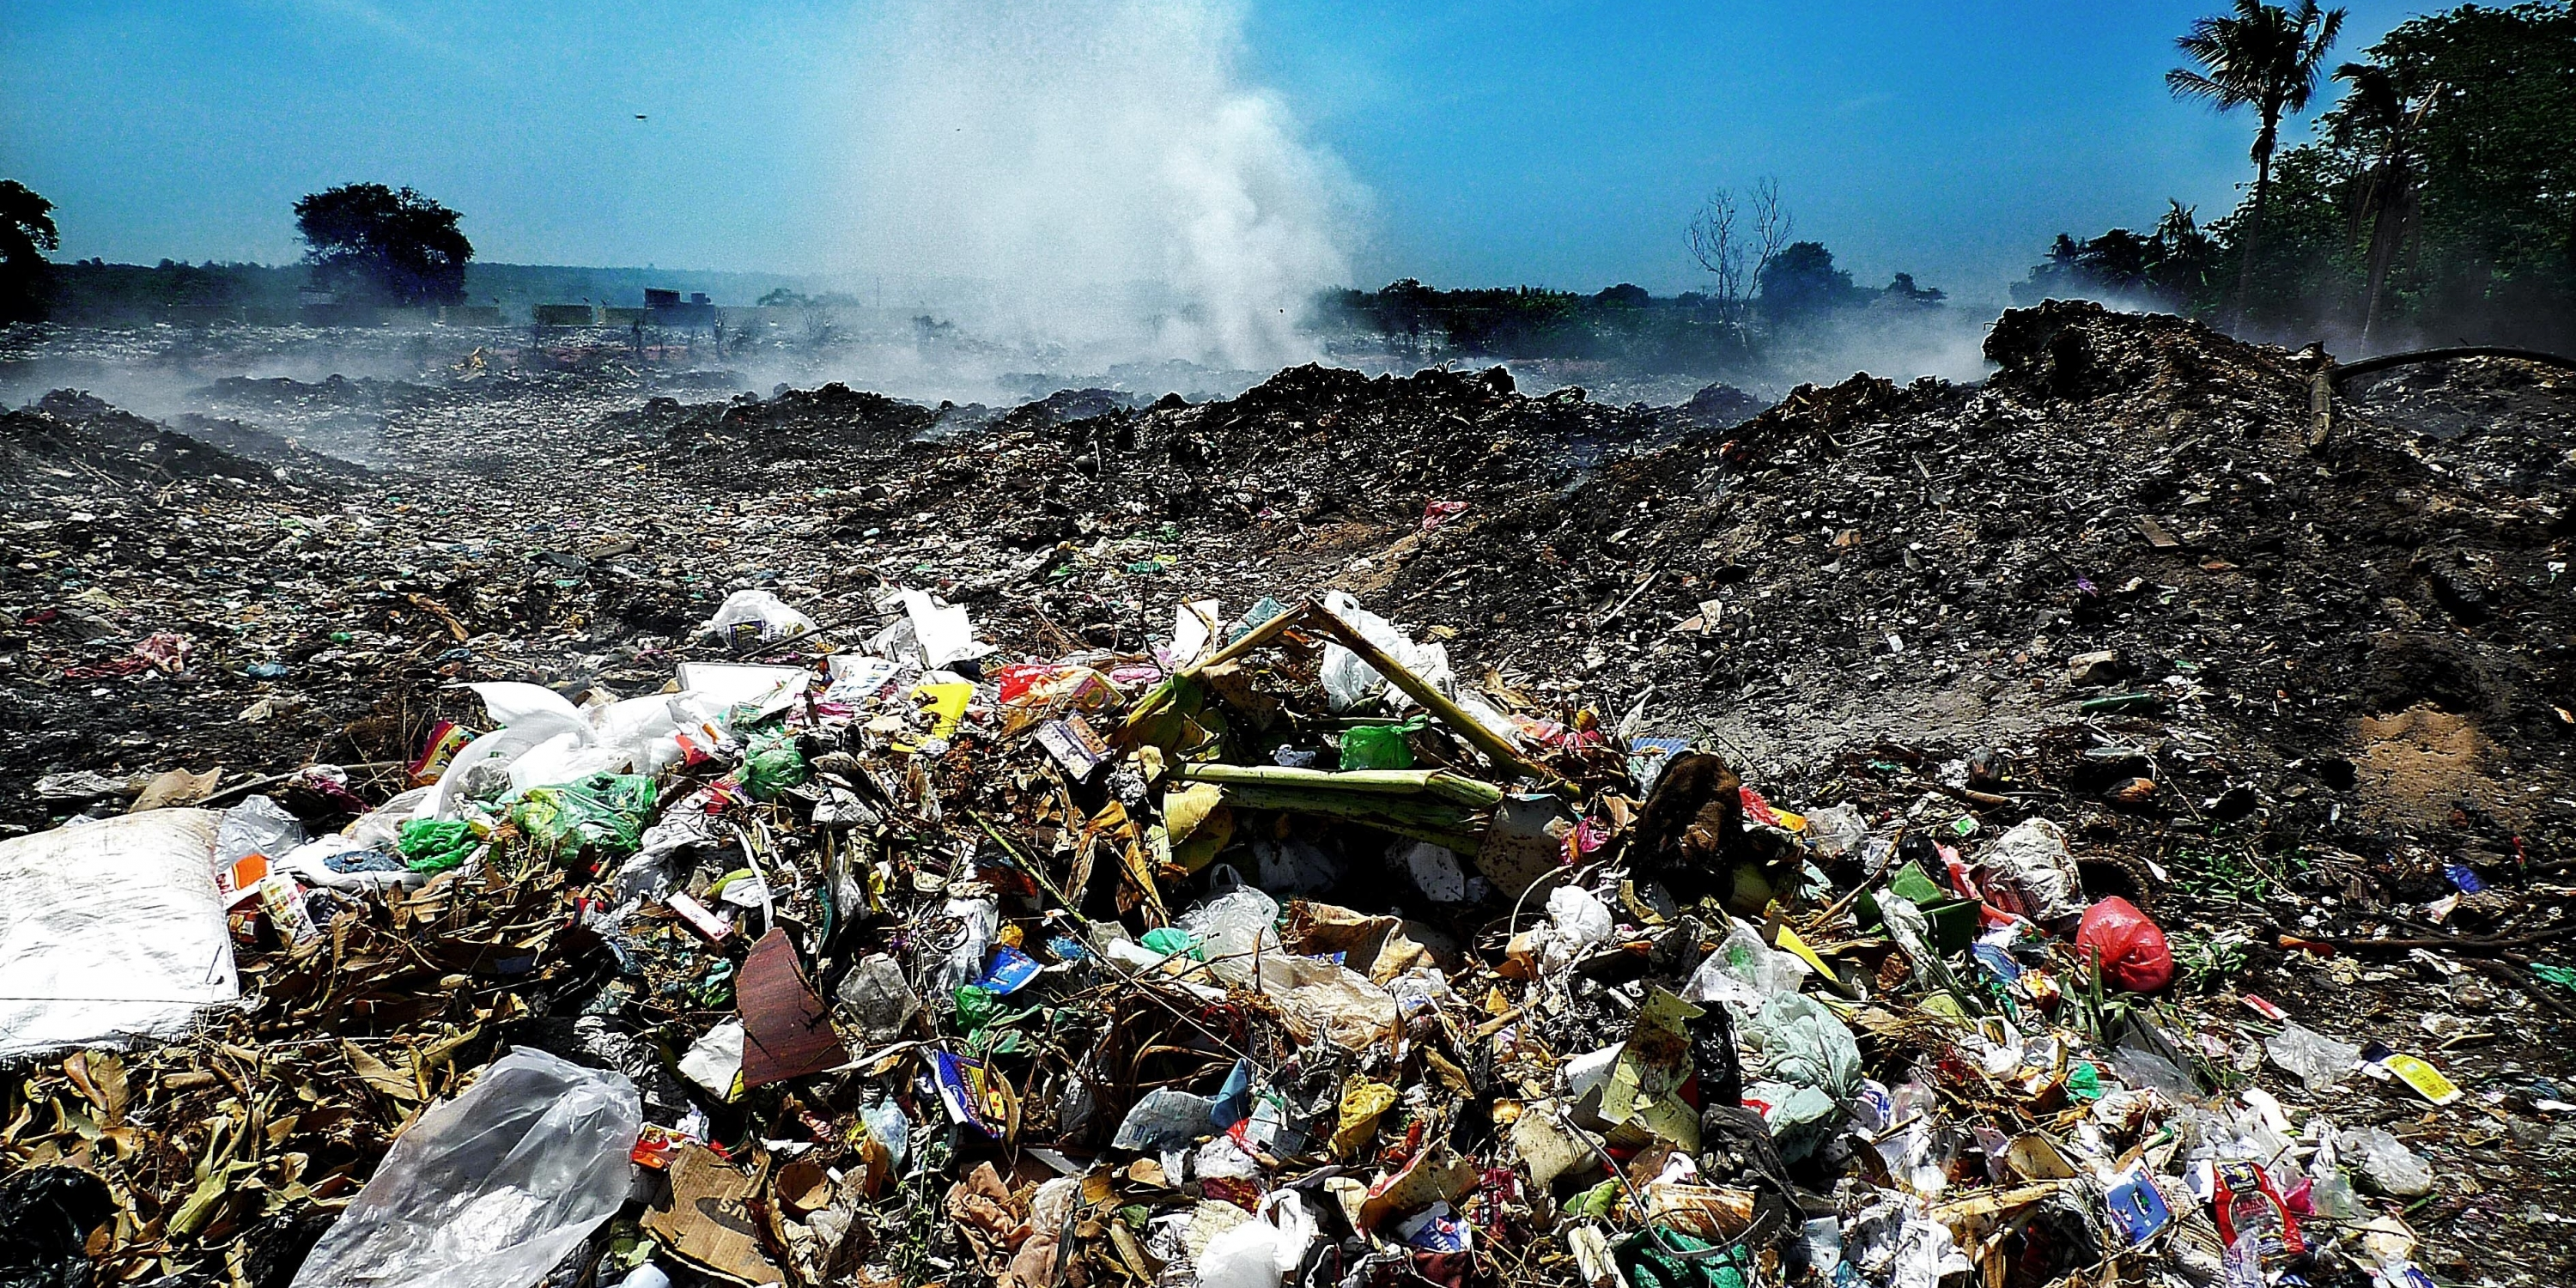 A dream of a world where the concept of waste no longer exists